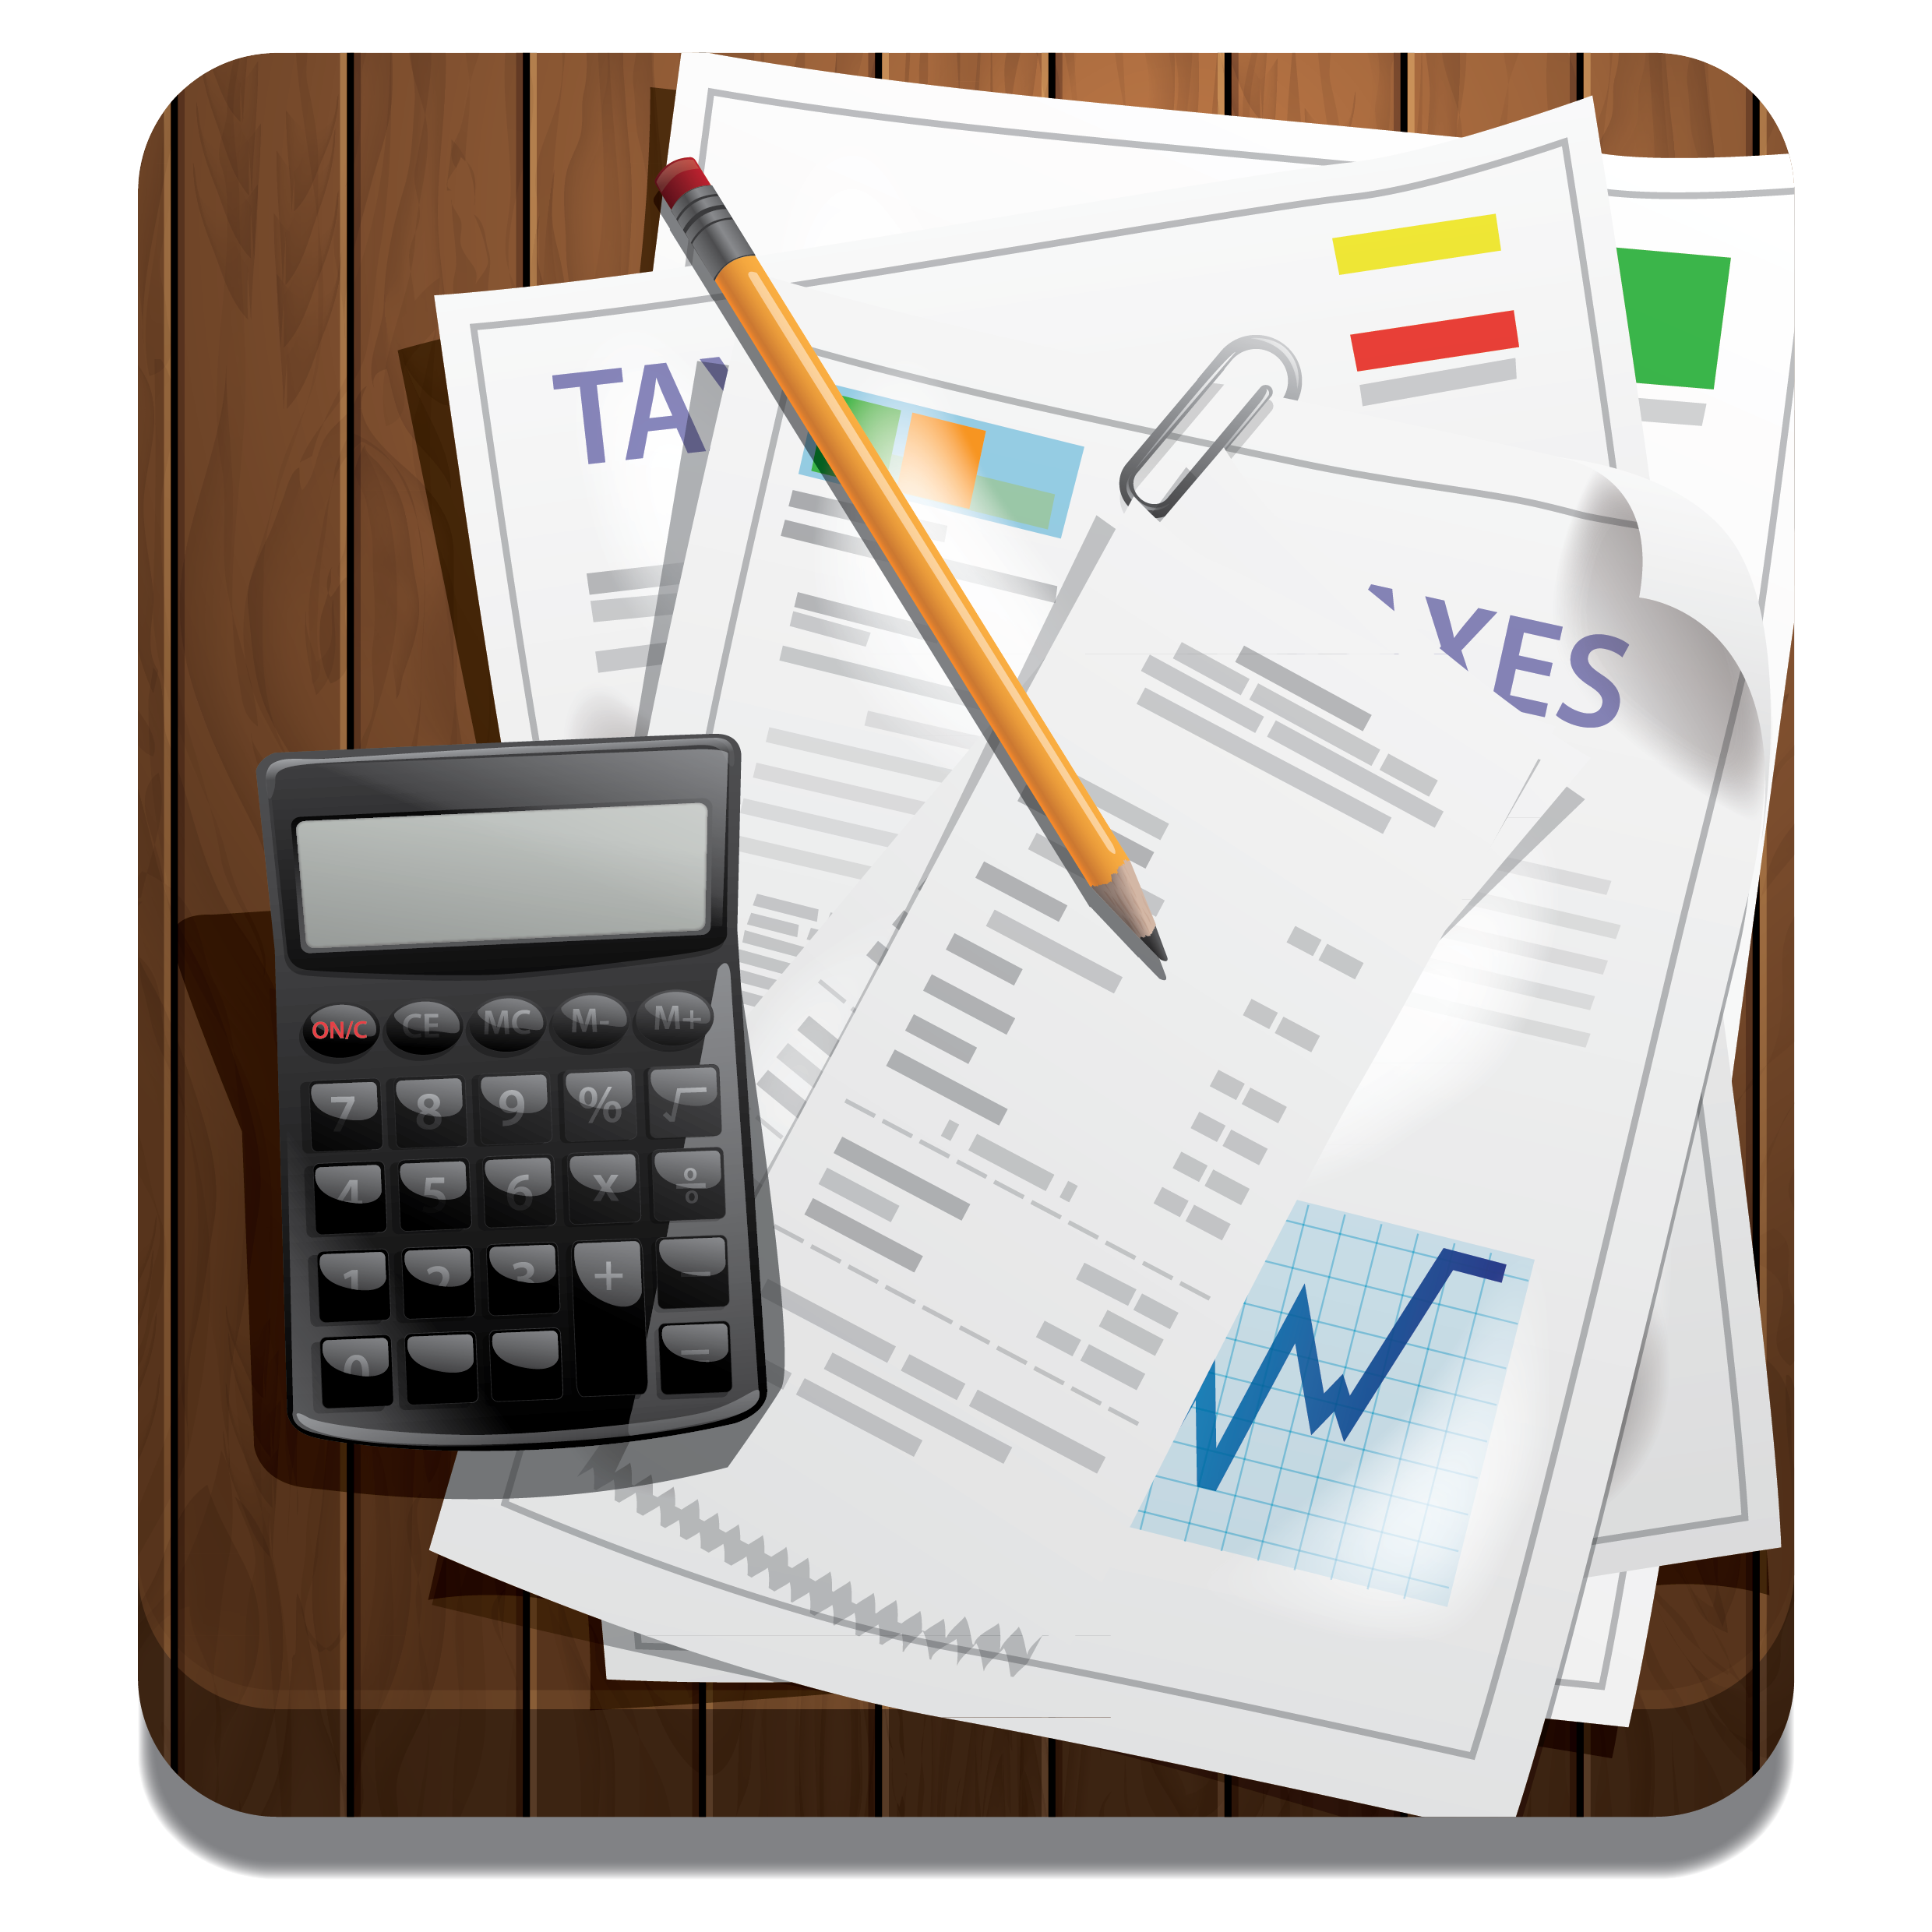 picture of calculator and tax forms as part of conversation about mortgage pre-approval